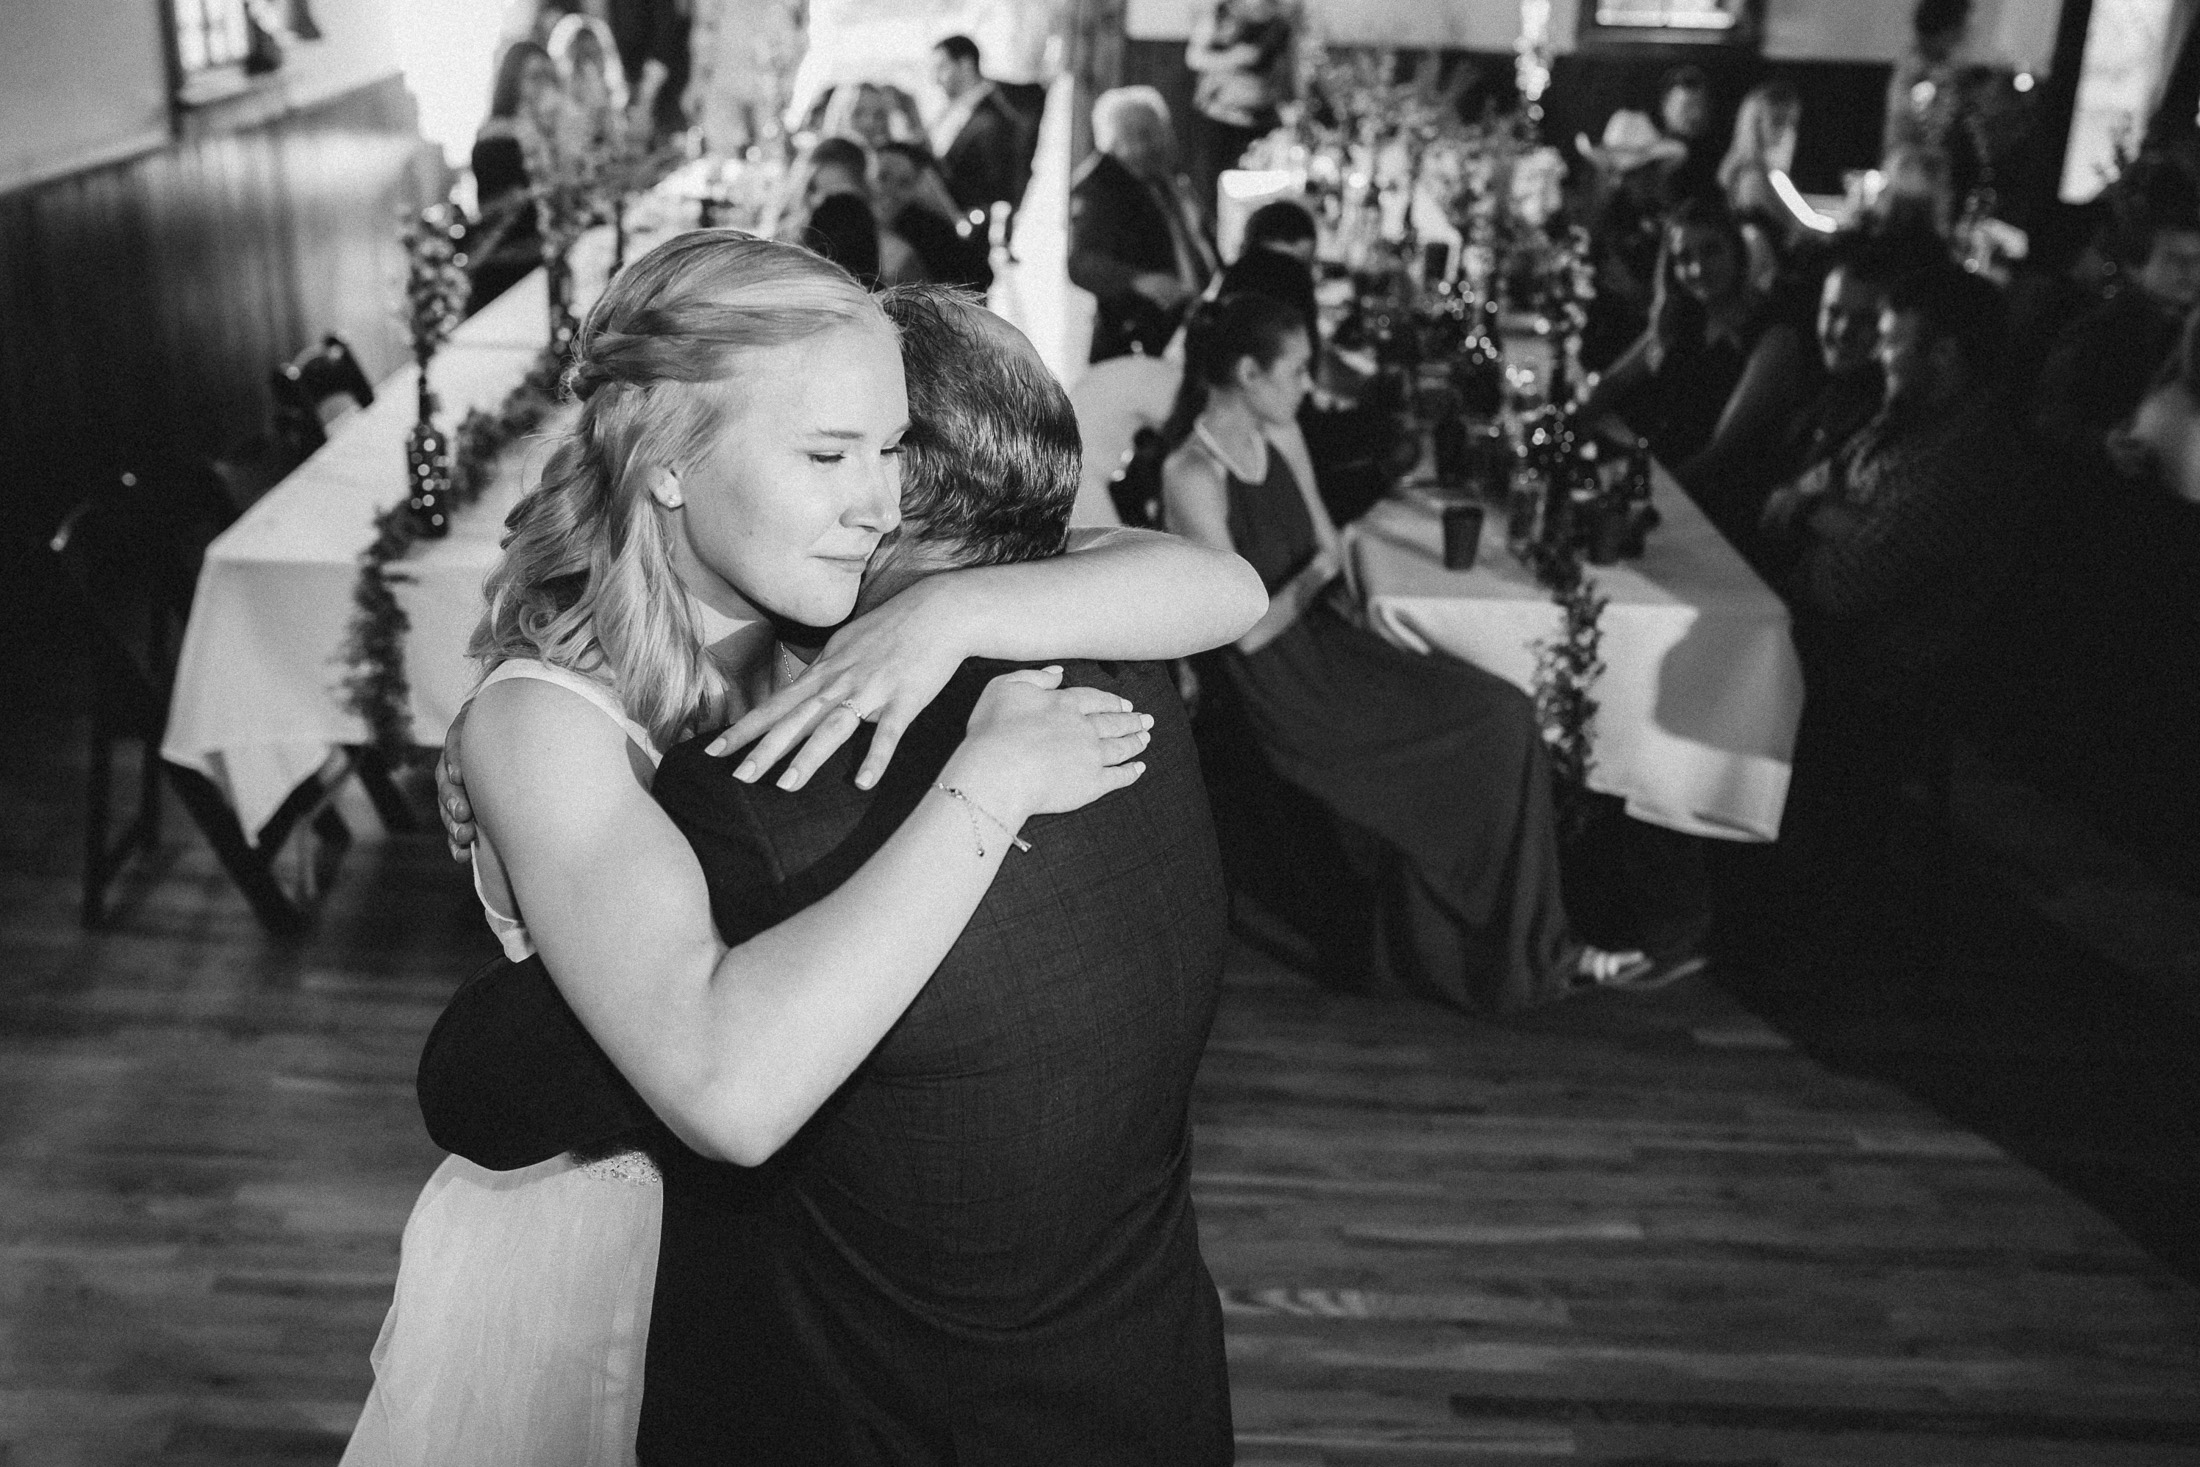 Bride hugs father during dance inside banquet hall at Willow Vale Events.